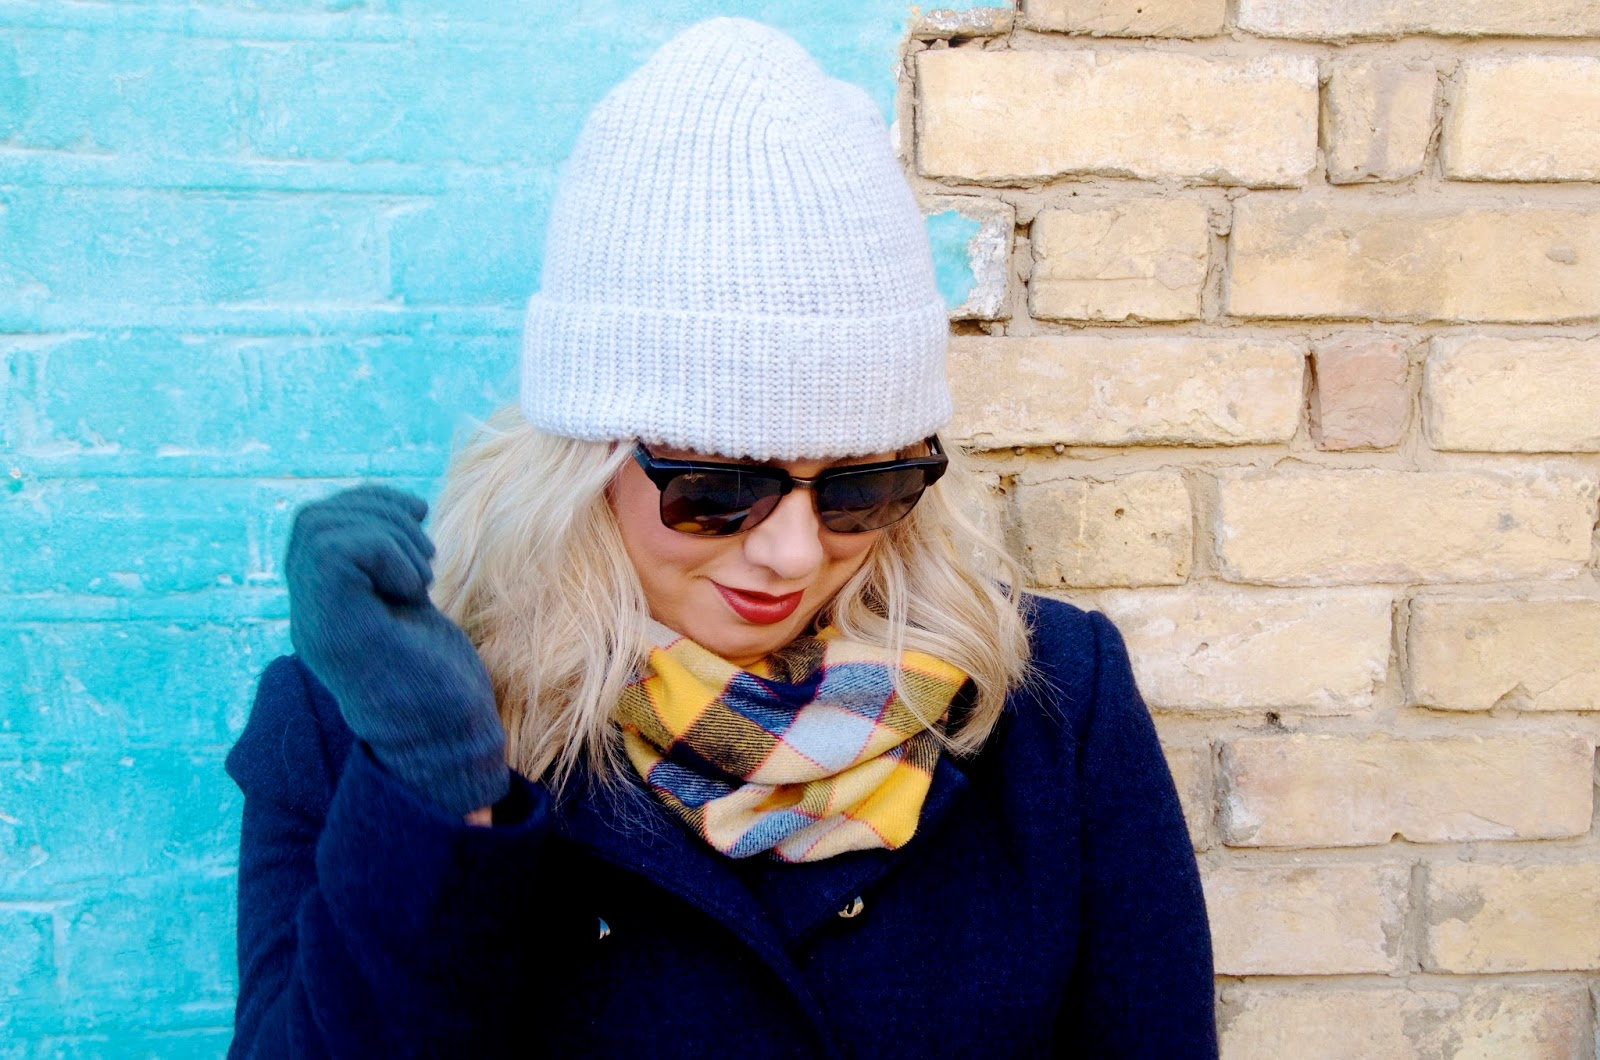 plaid scarf and knit hat